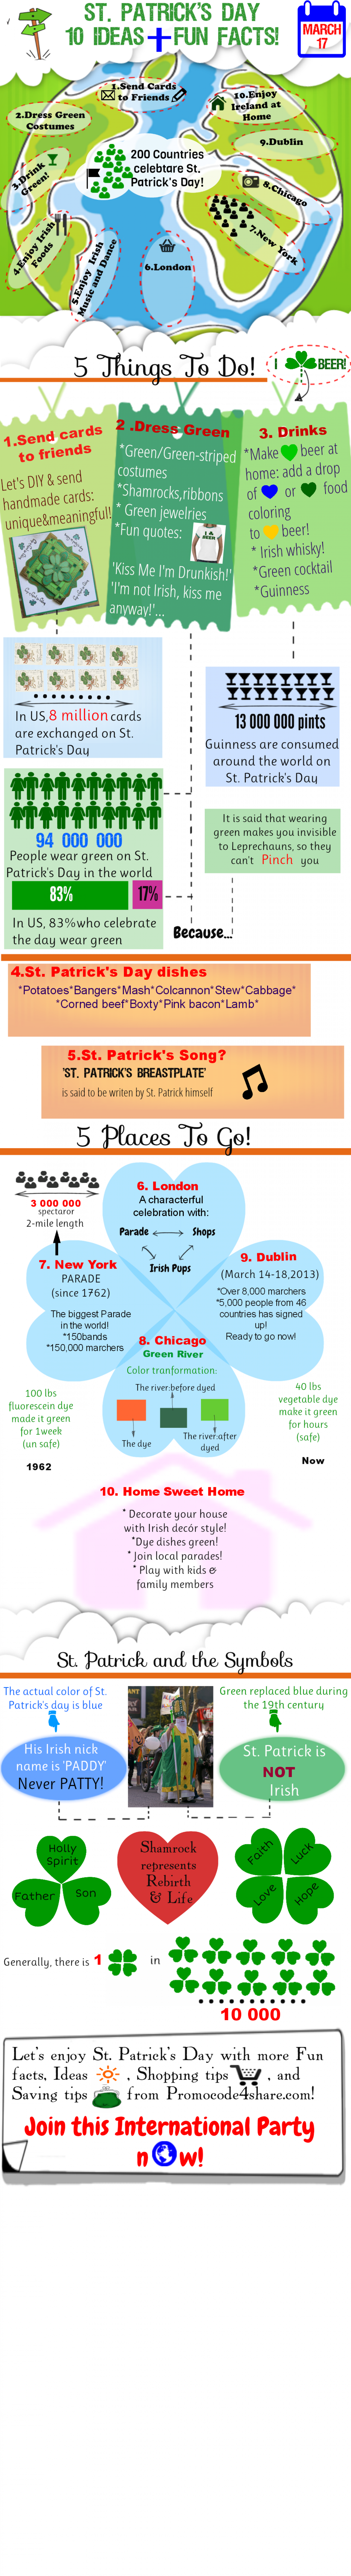 ST. PATRICK'S DAY - 10 IDEAS + FUN FACTS! Infographic